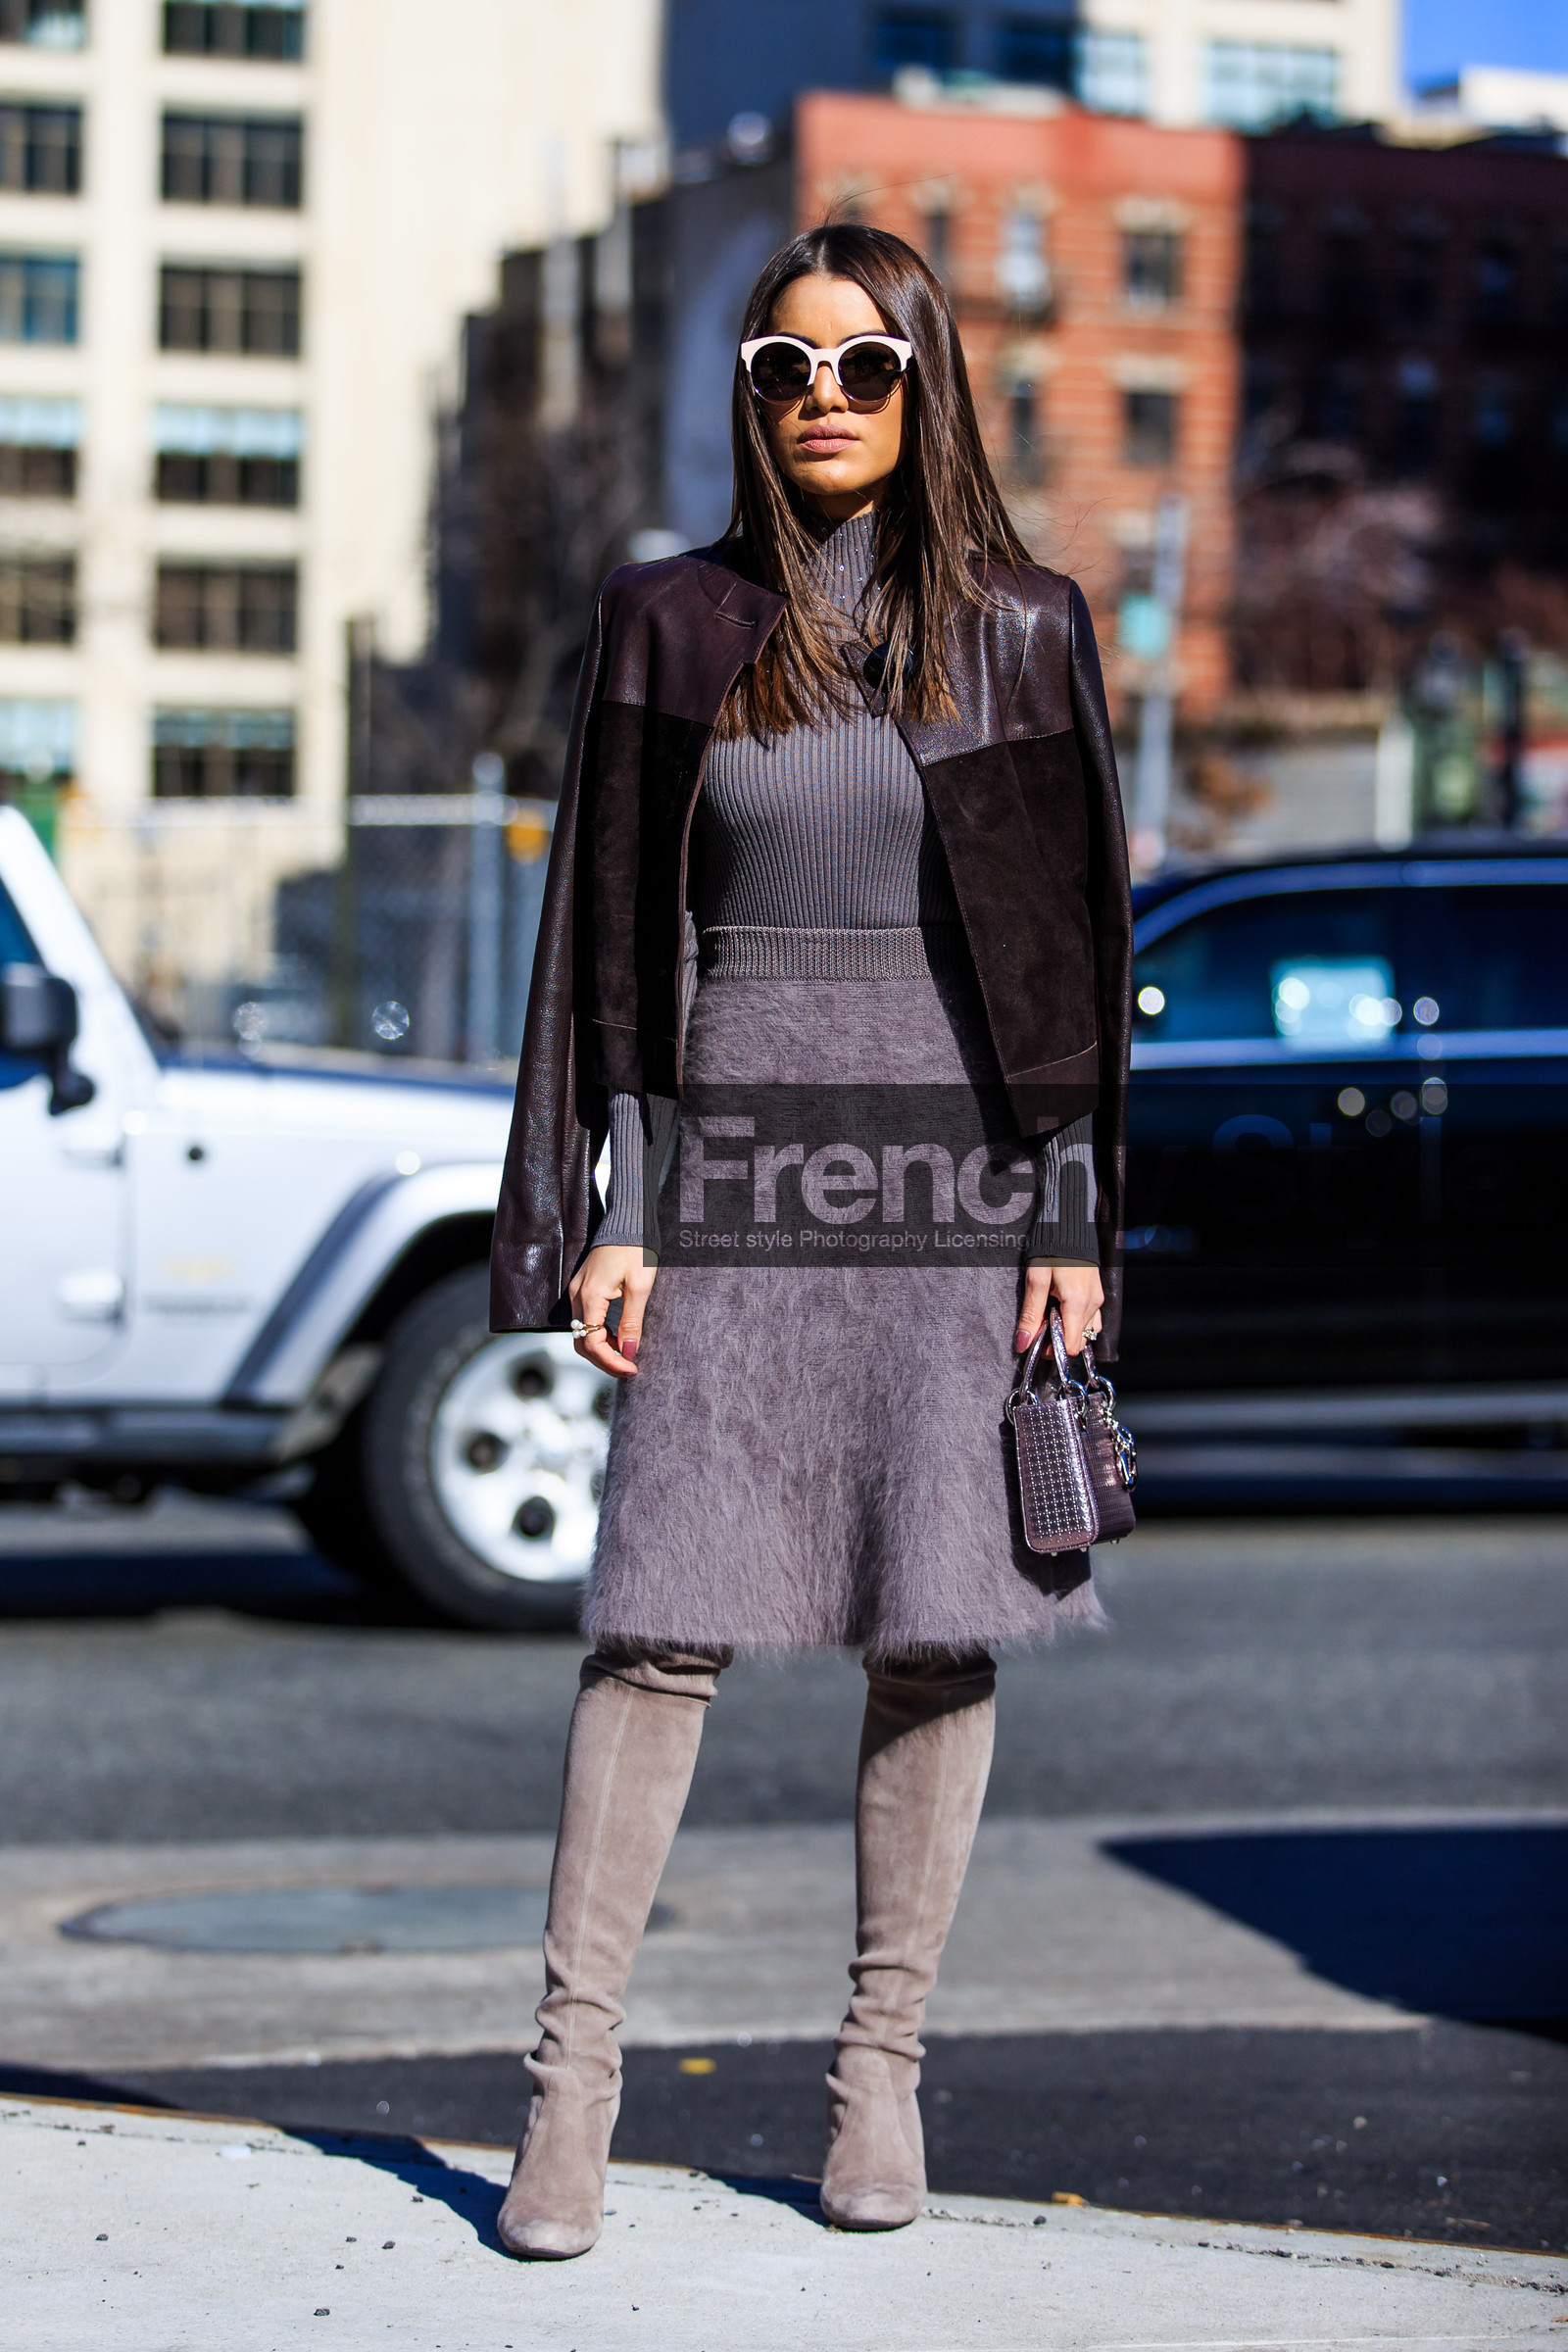 2017 ny fashion week - 1602ny1247 Jpg Frenchy Style Street Style By Jonathan